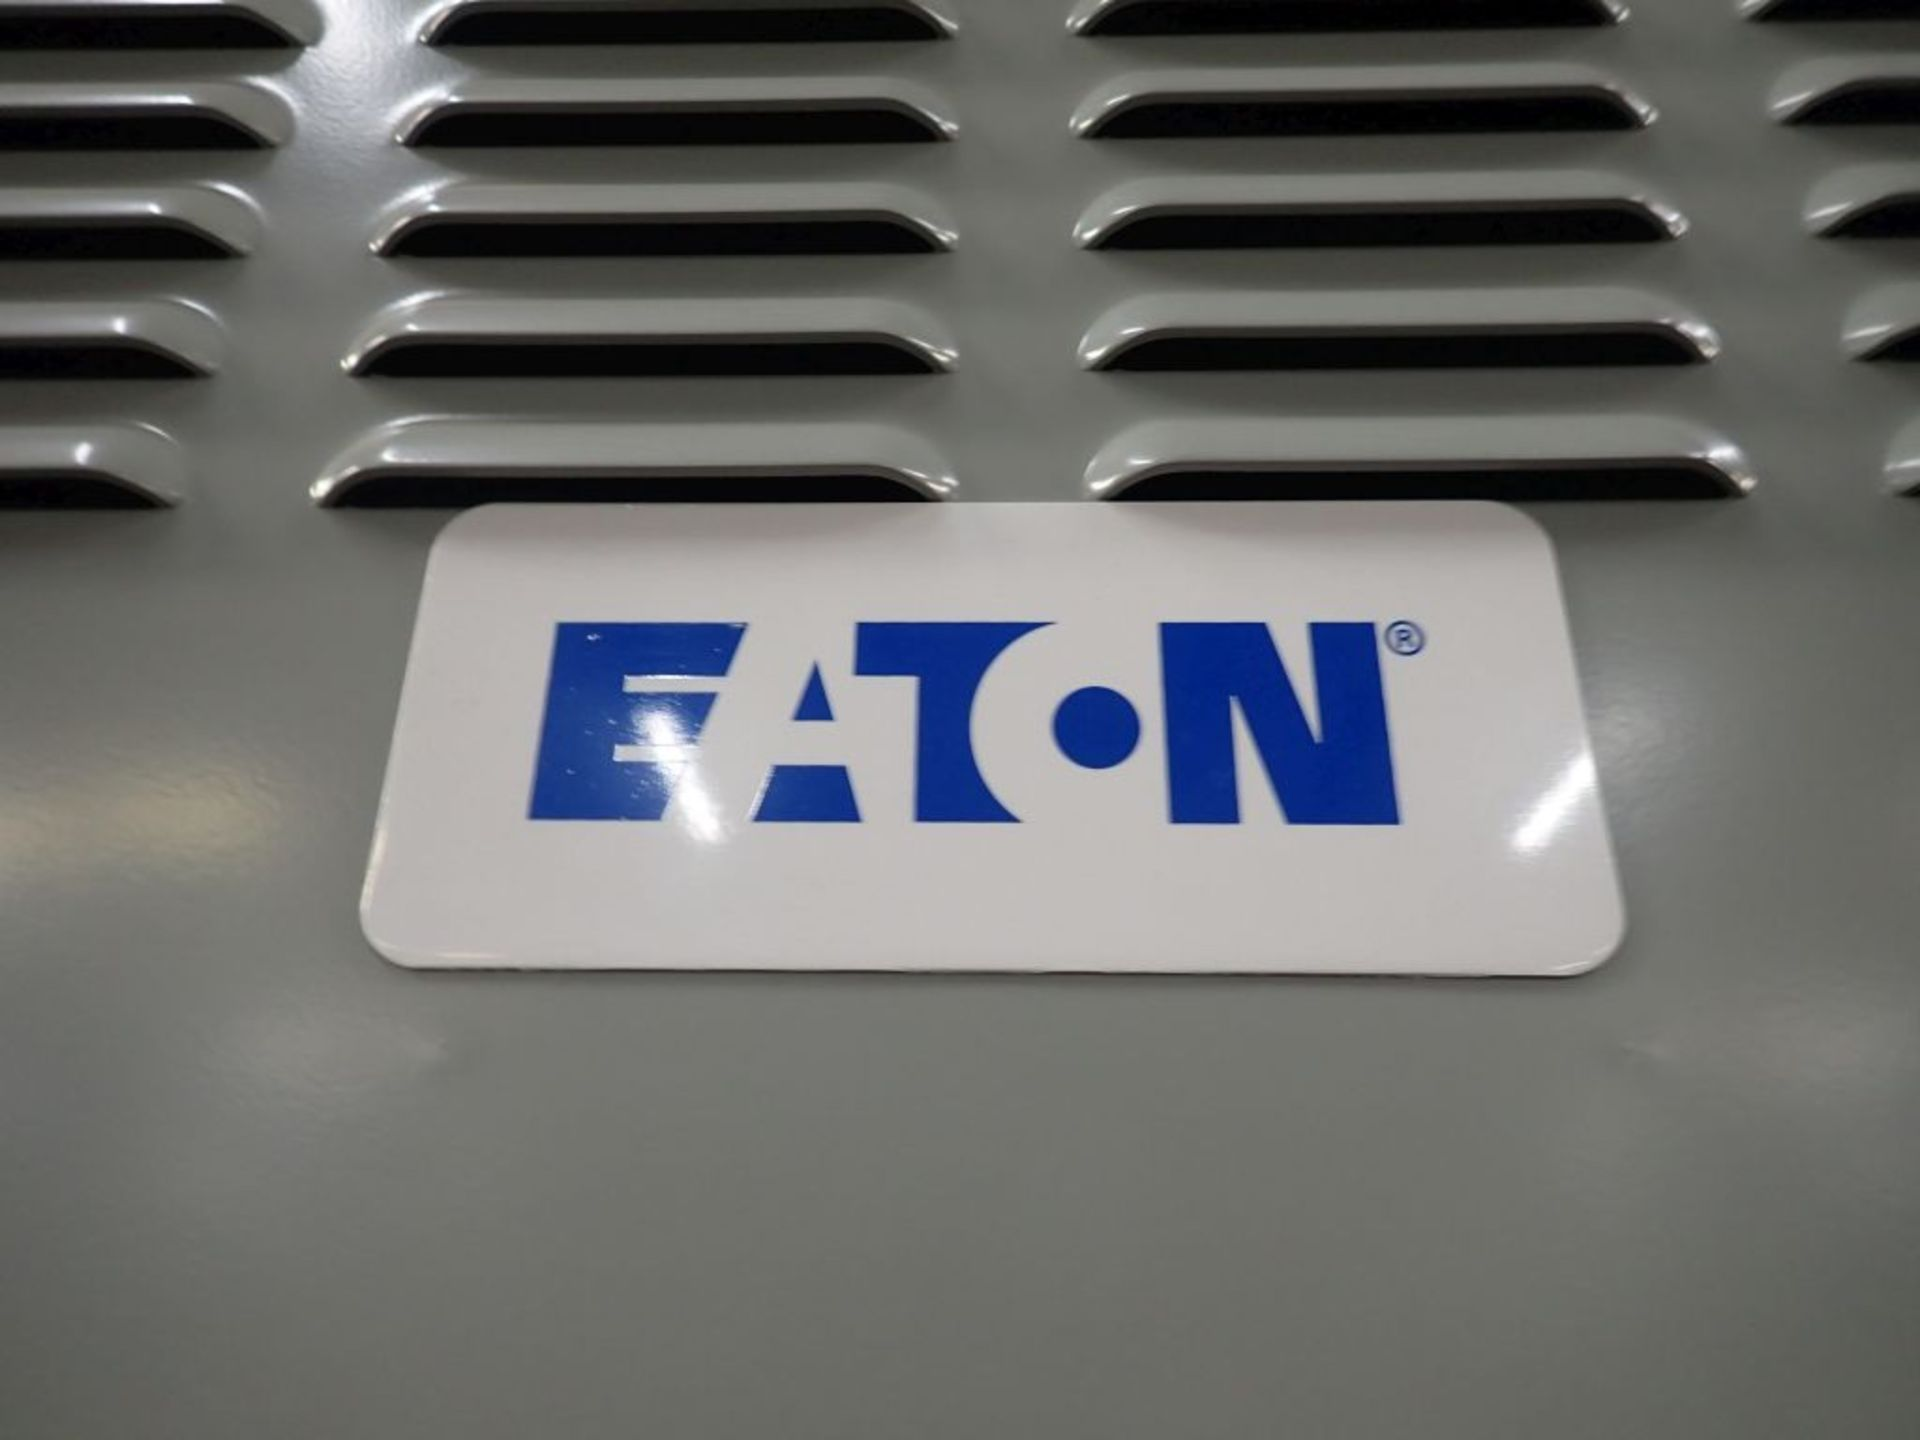 Eaton Pow-R-Line Switchboard   PRL-C; 480V; 3 PH; (1) Pringle Bolted Pressure Switch, 2500A, Cat No. - Image 8 of 13